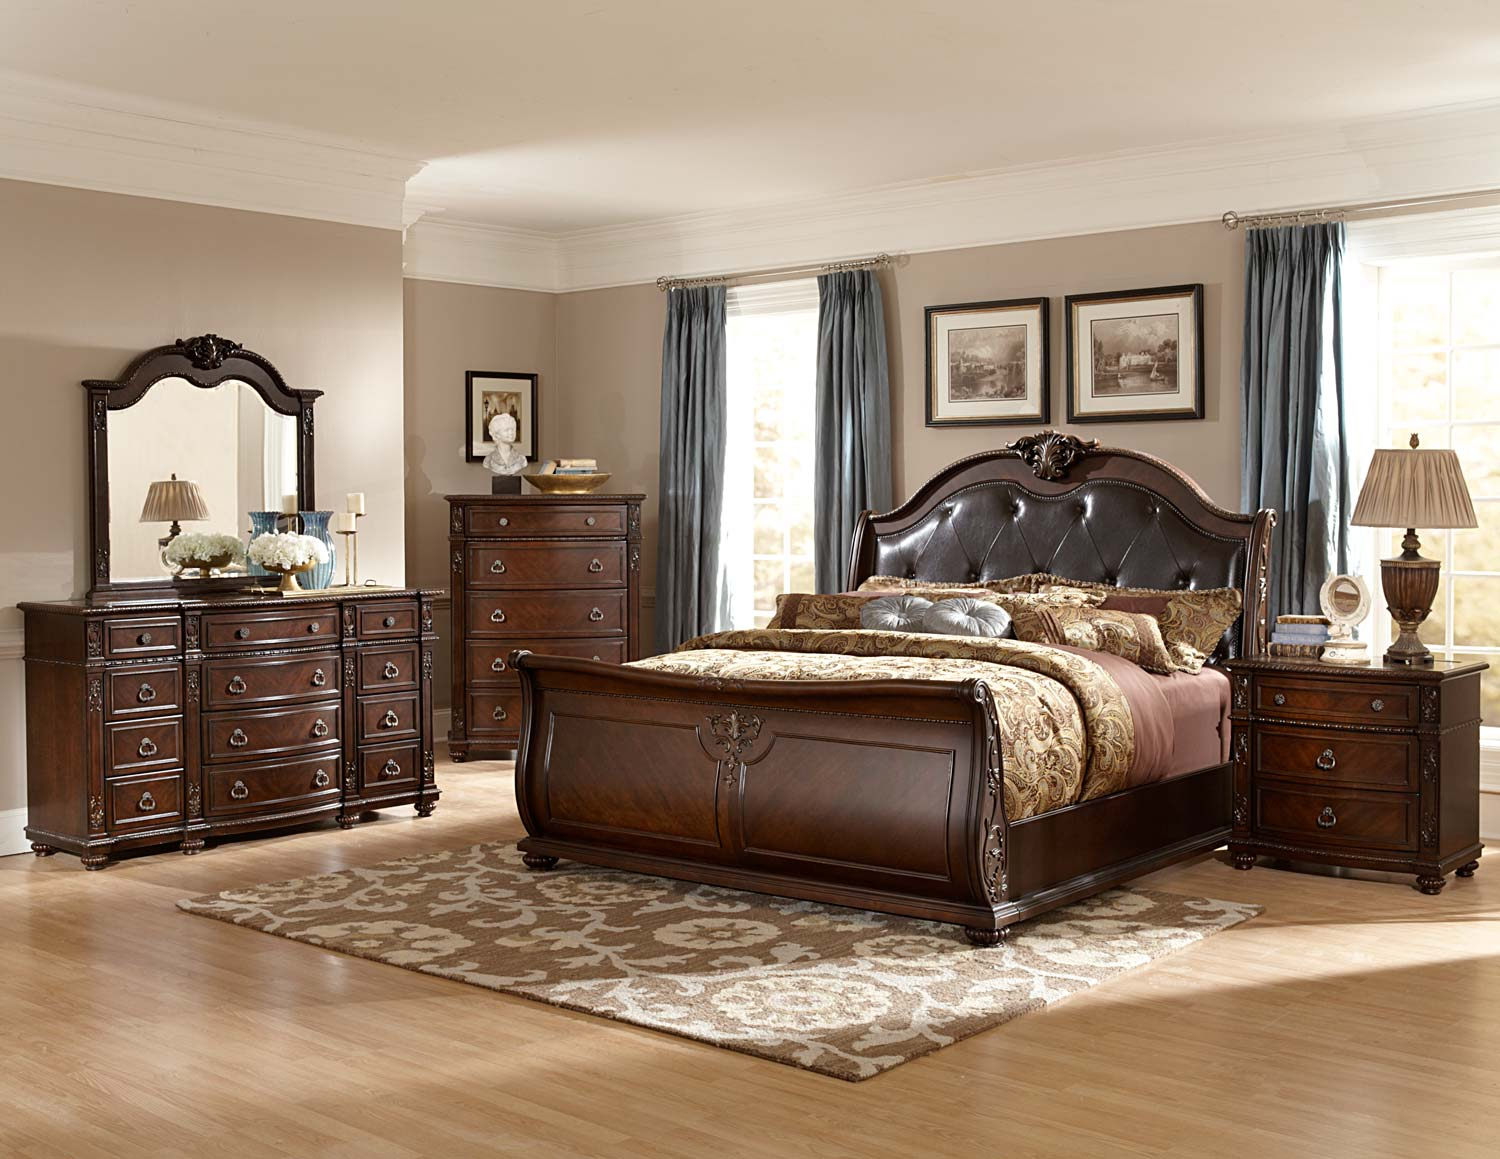 Homelegance Hillcrest Manor Sleigh Bedroom Set - Cherry